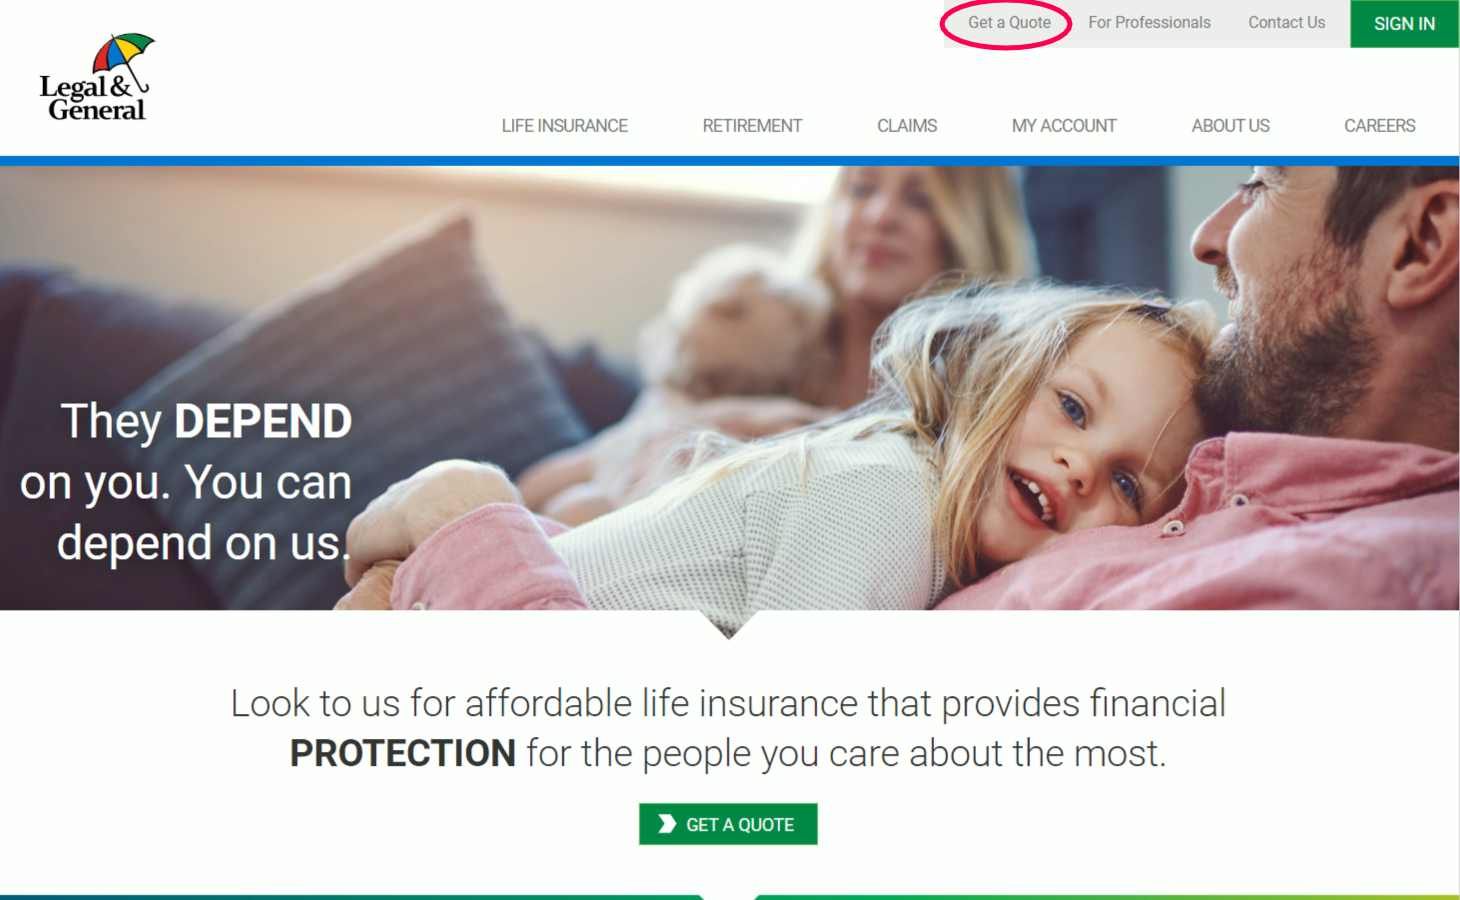 Legal and General Home Page Get a Quote Highlight